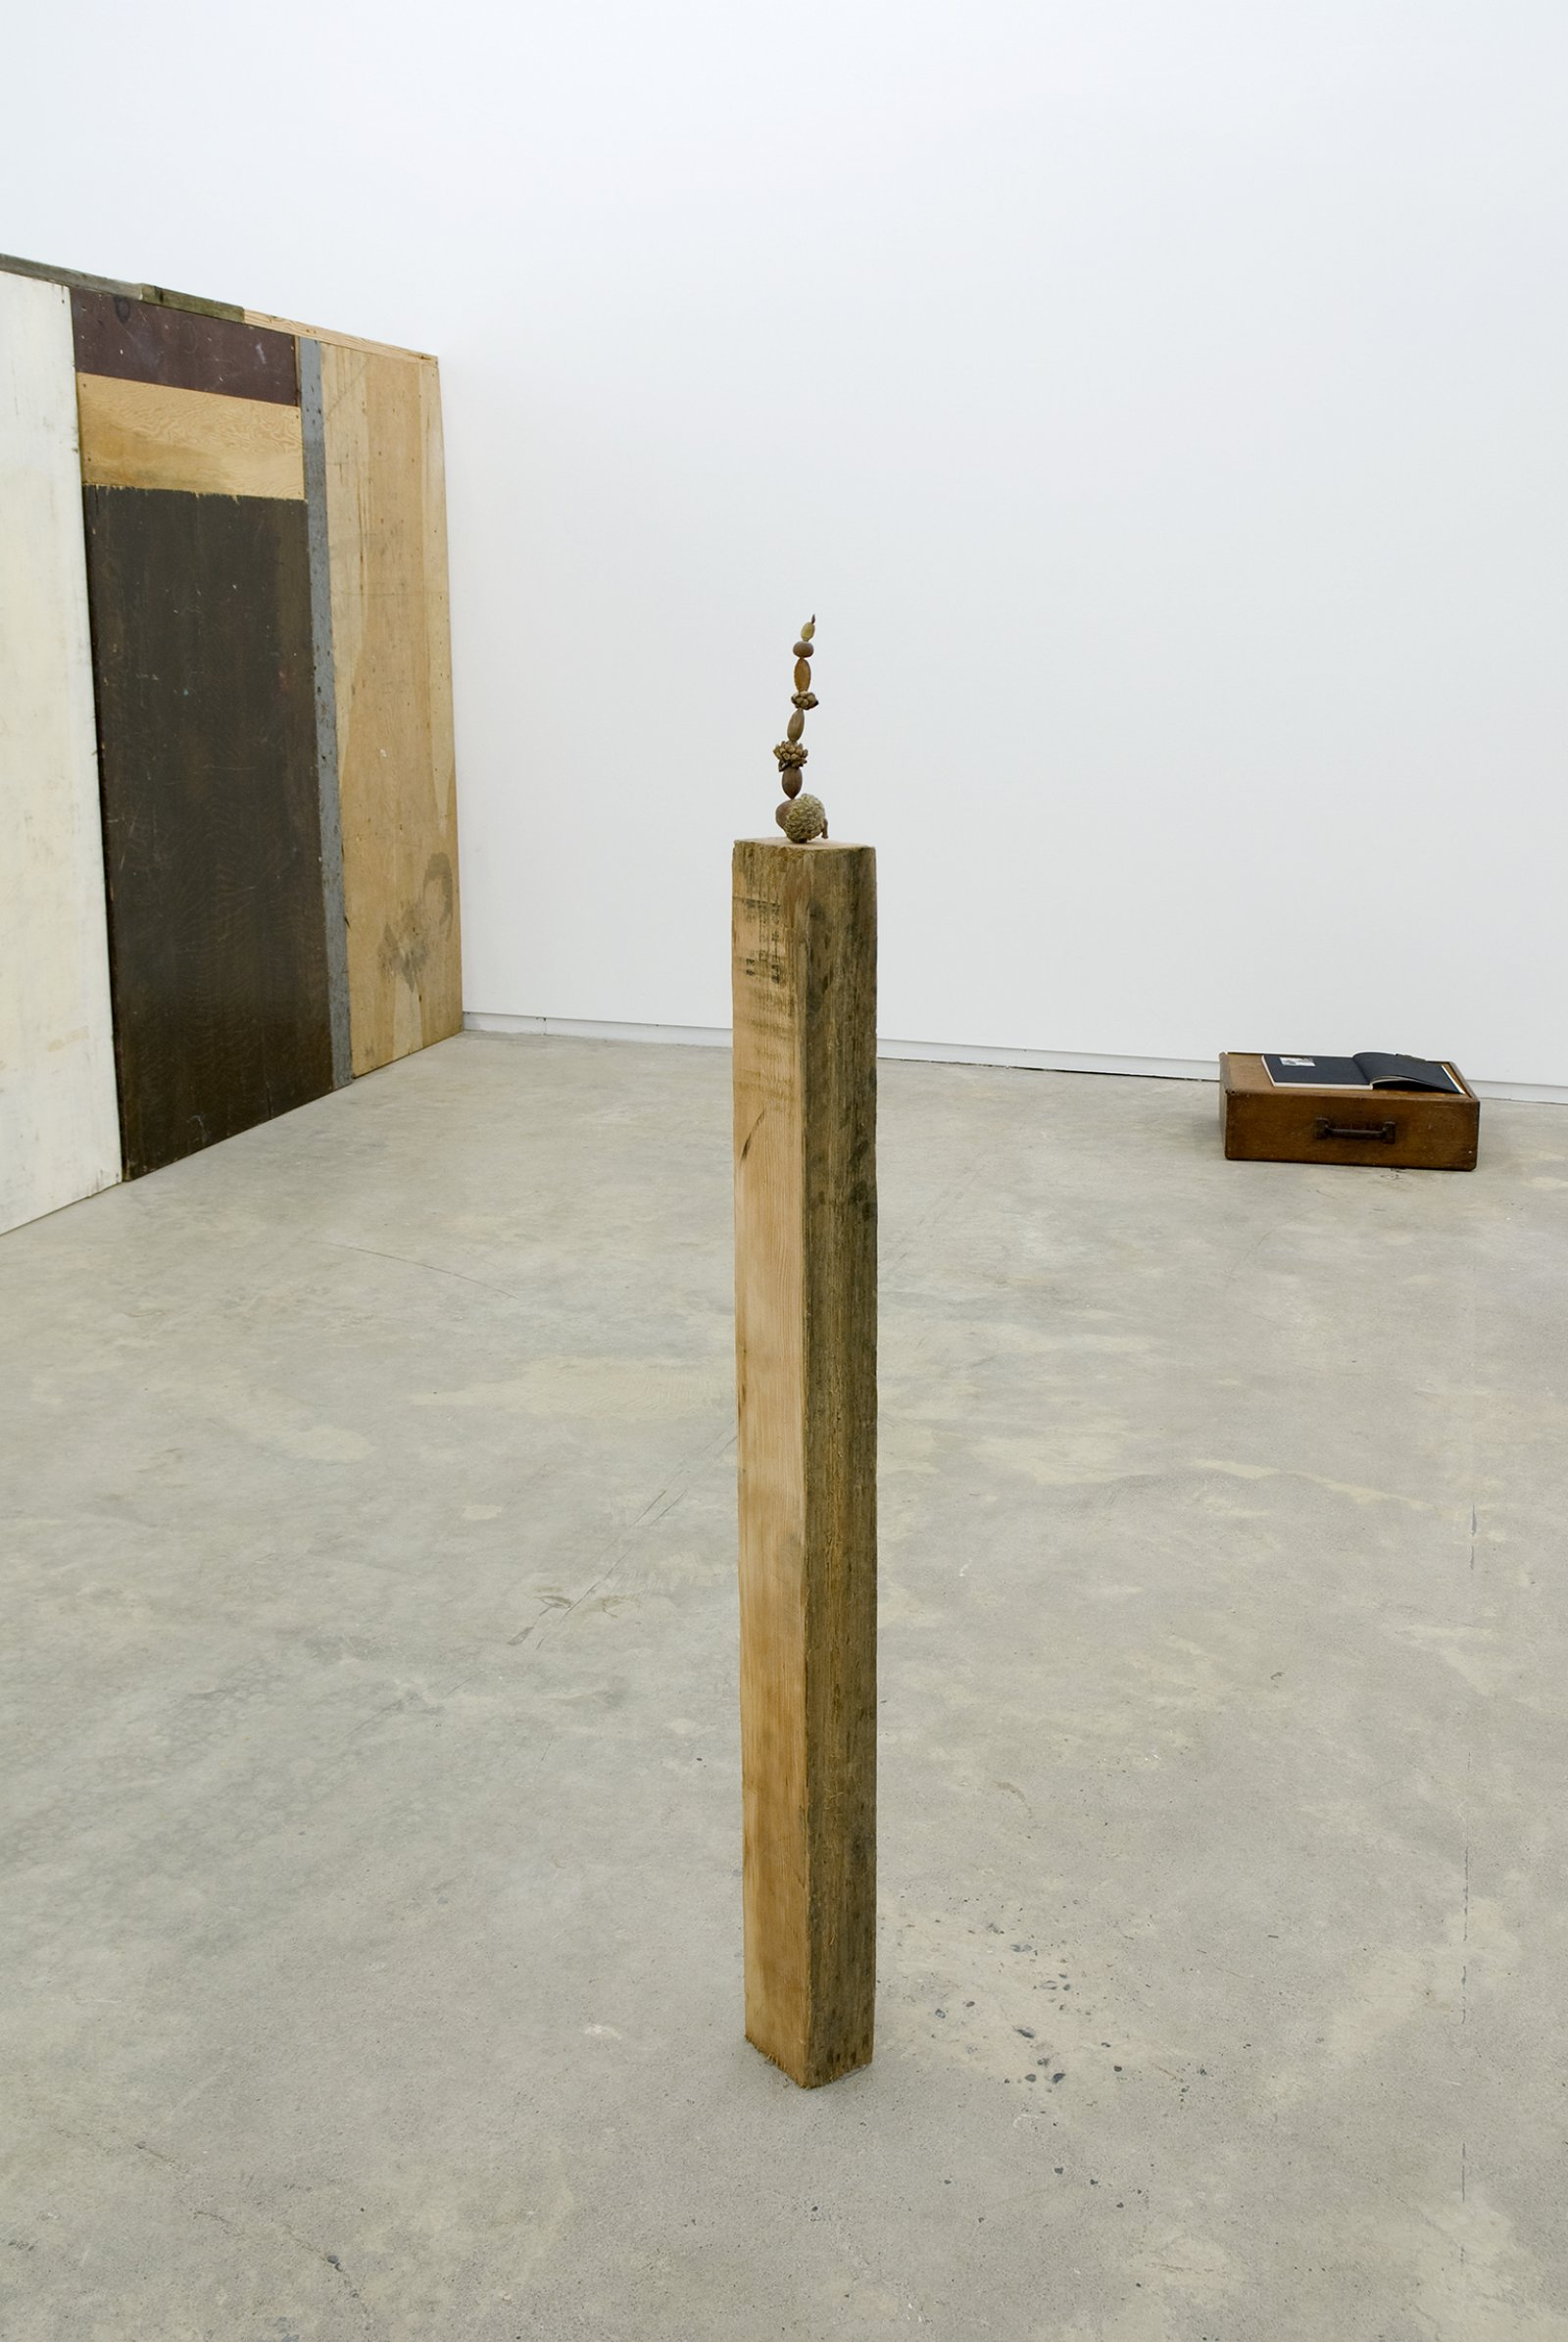 Gareth Moore, Judd also planted these trees from Uncertain Pilgrimage, 2006-2009, nectarine pit, apple seed, Rothko pecan, Judd cone, unidentified seeds and nuts, found wood, 47 x 4 x 3 in. (118 x 9 x 6 cm) by Ashes Withyman